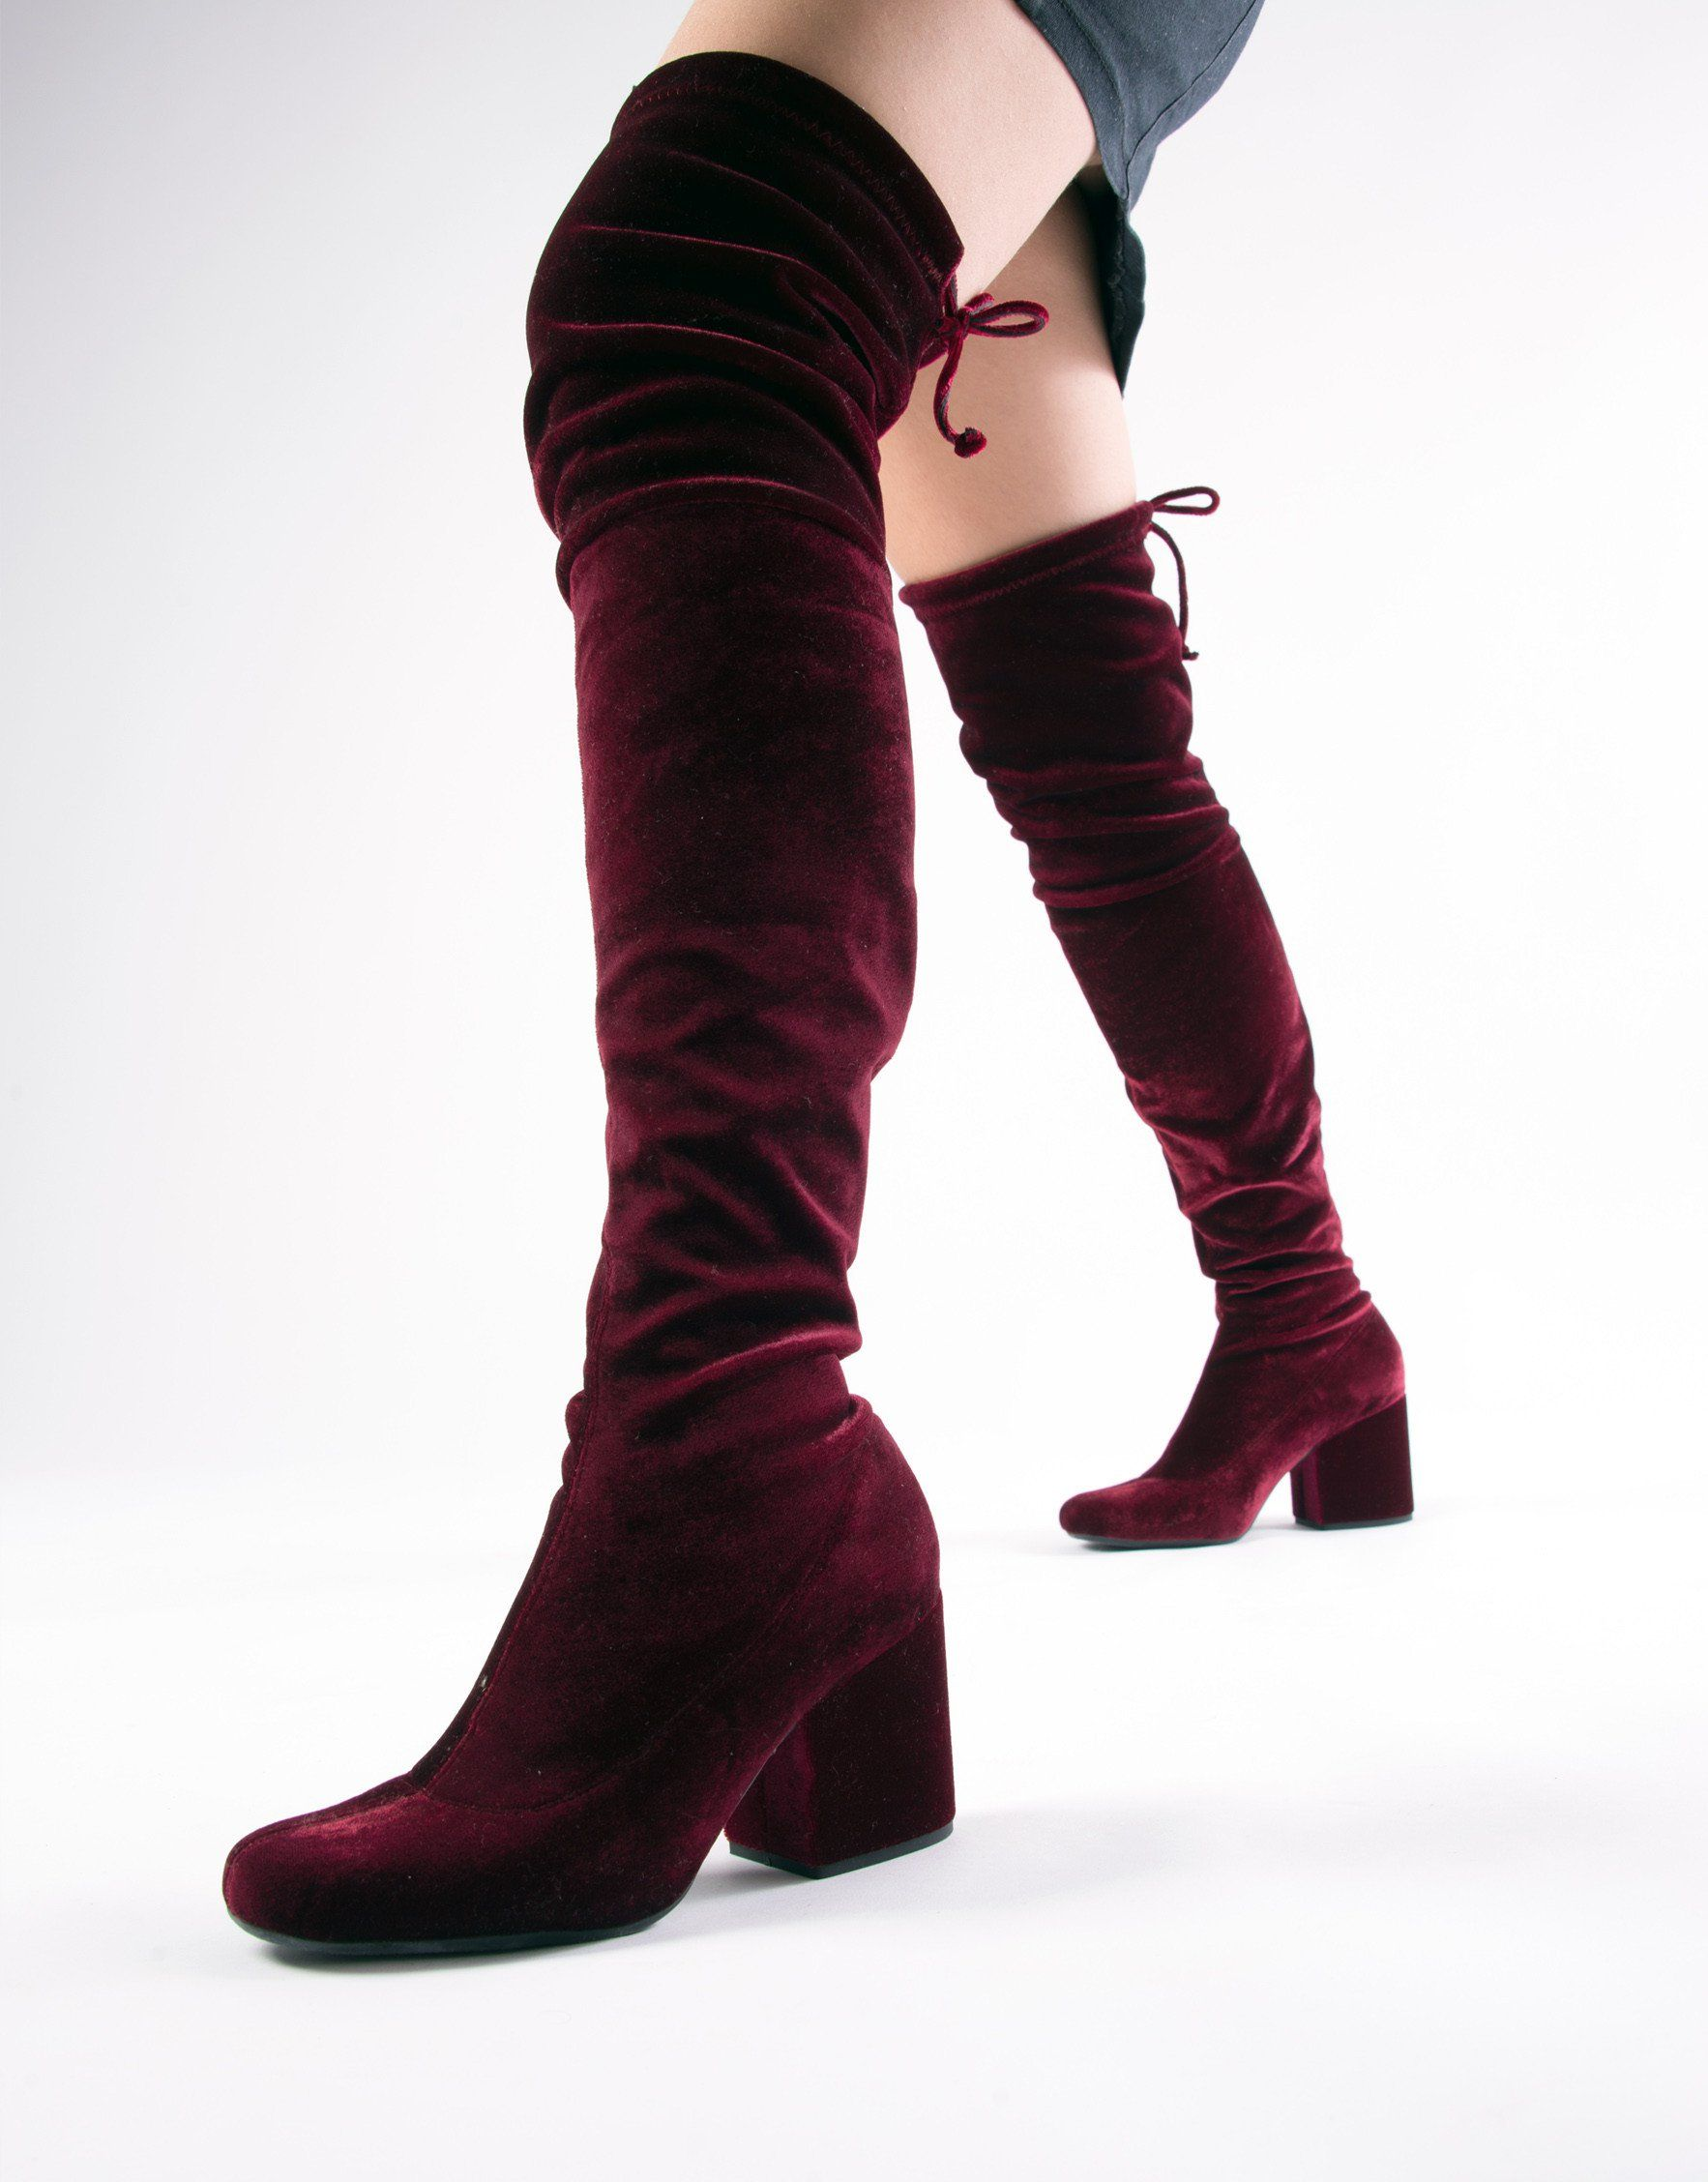 41fd2a467 PREVIEW BOTA OVER THE KNEE VELVET BORDÔ